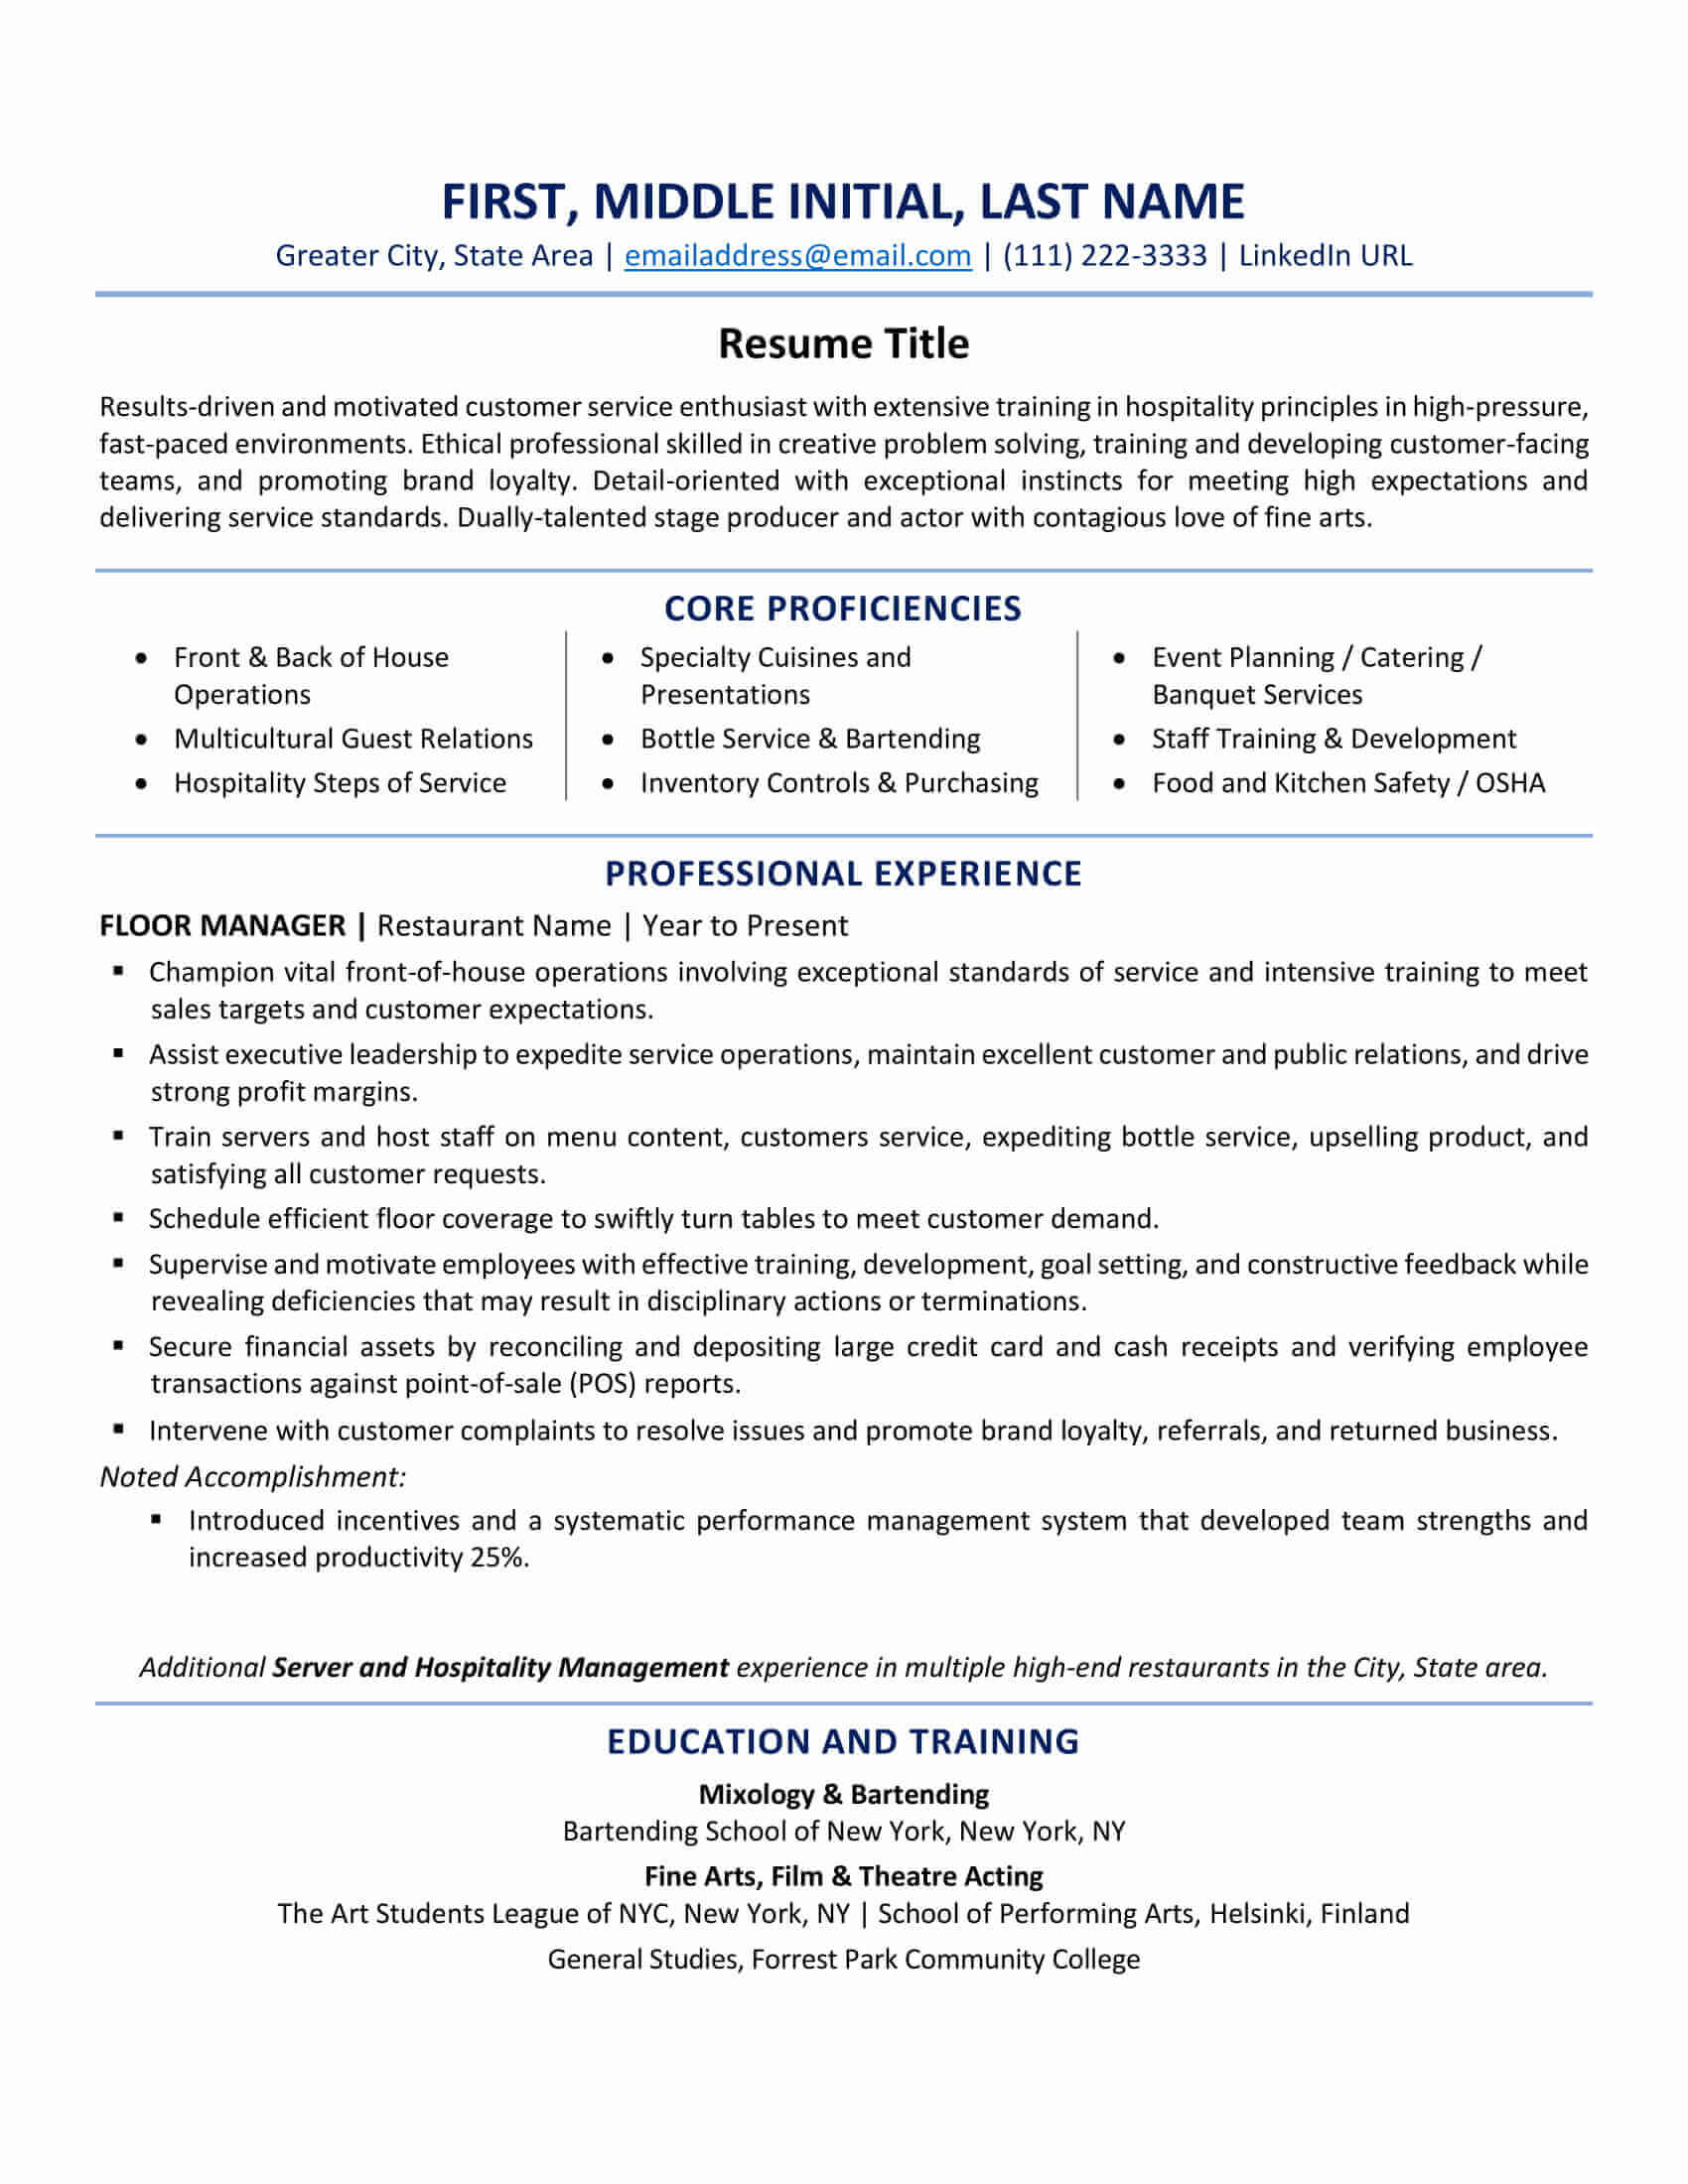 ats resume test free checker formatting examples best format when moving to the us lpn Resume Best Ats Resume Format